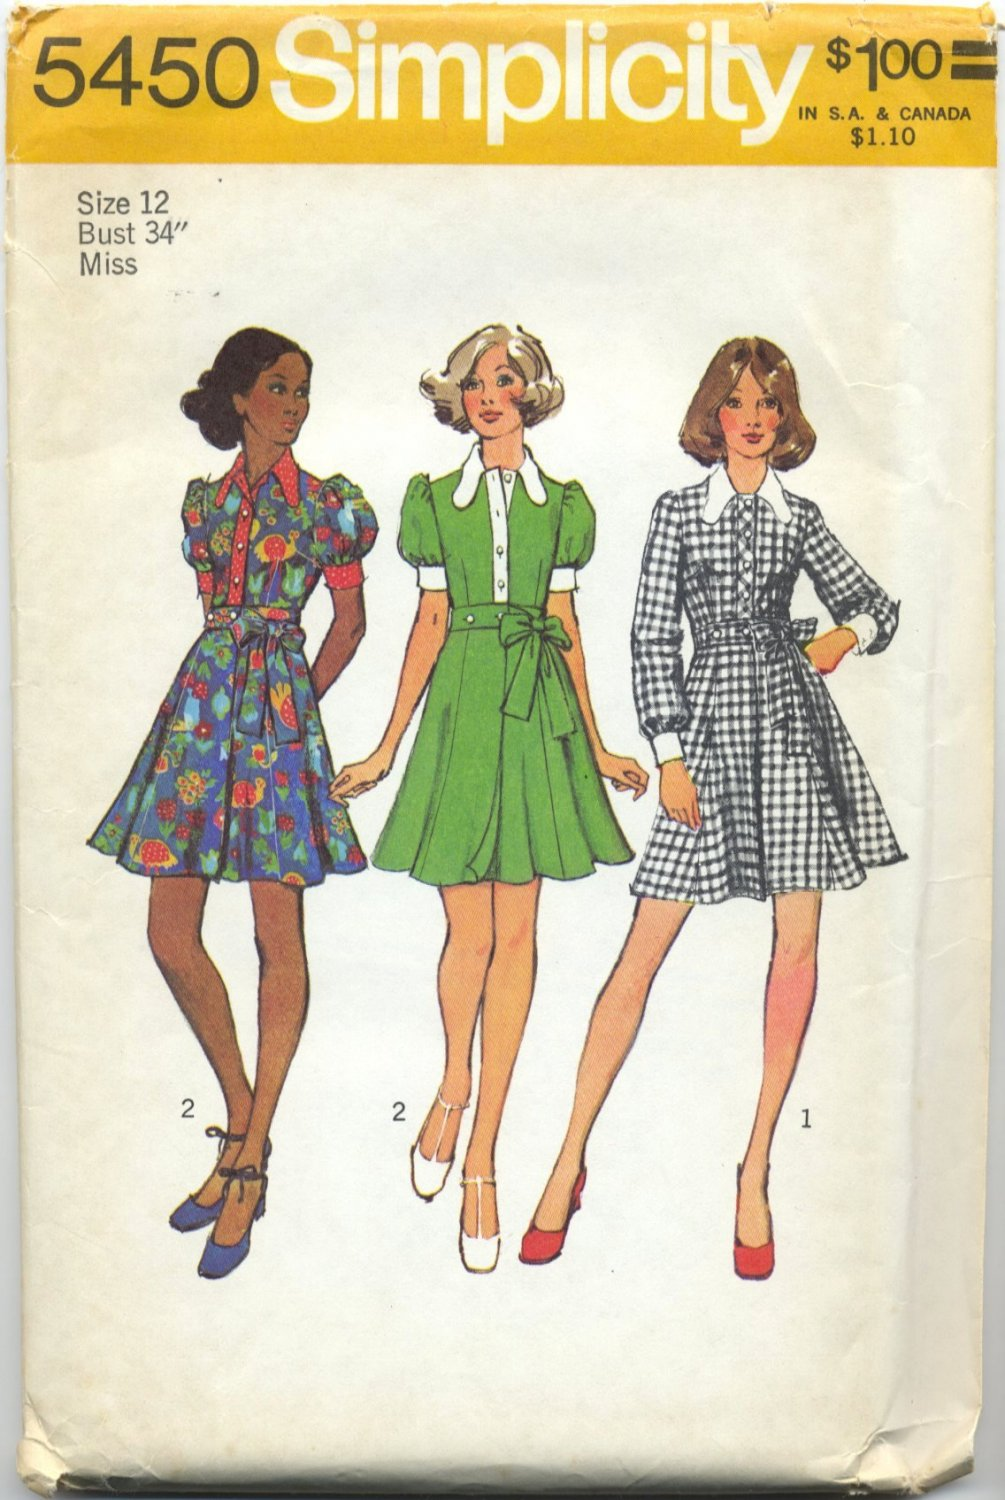 "Simplicity 5450 Mini-Dress with Wrap Skirt - - Sewing Pattern Misses' 12 Bust 34"" Flirty Vintage 70s"